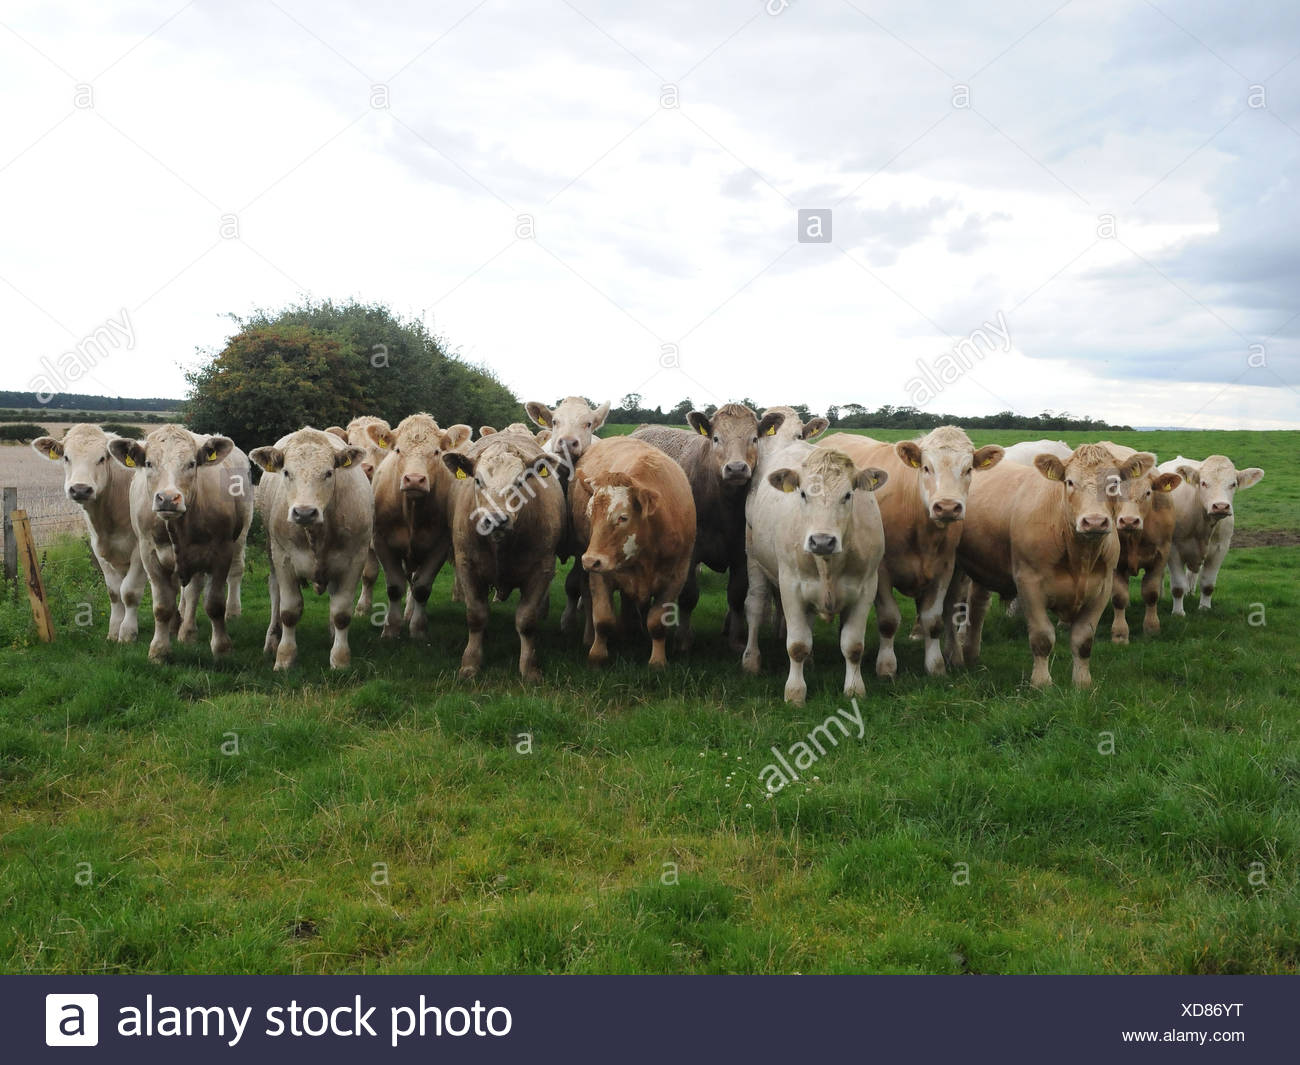 A row of cows all in a line - Stock Image